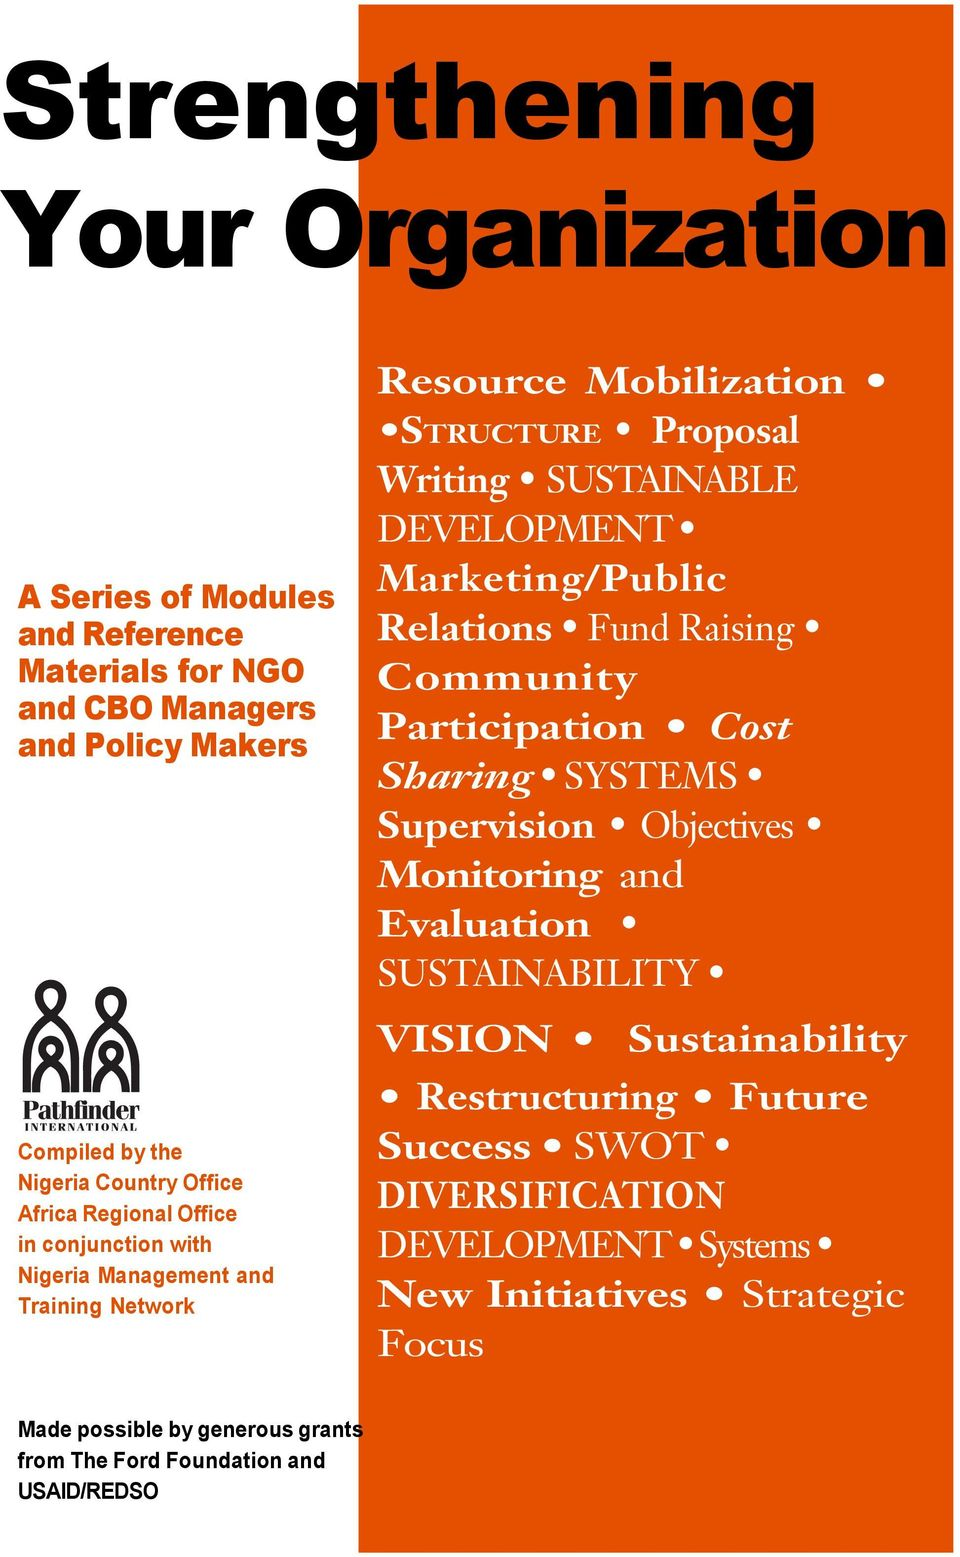 Marketing/Public Relations Fund Raising Community Participation Cost Sharing SYSTEMS Supervision Objectives Monitoring and Evaluation SUSTAINABILITY VISION